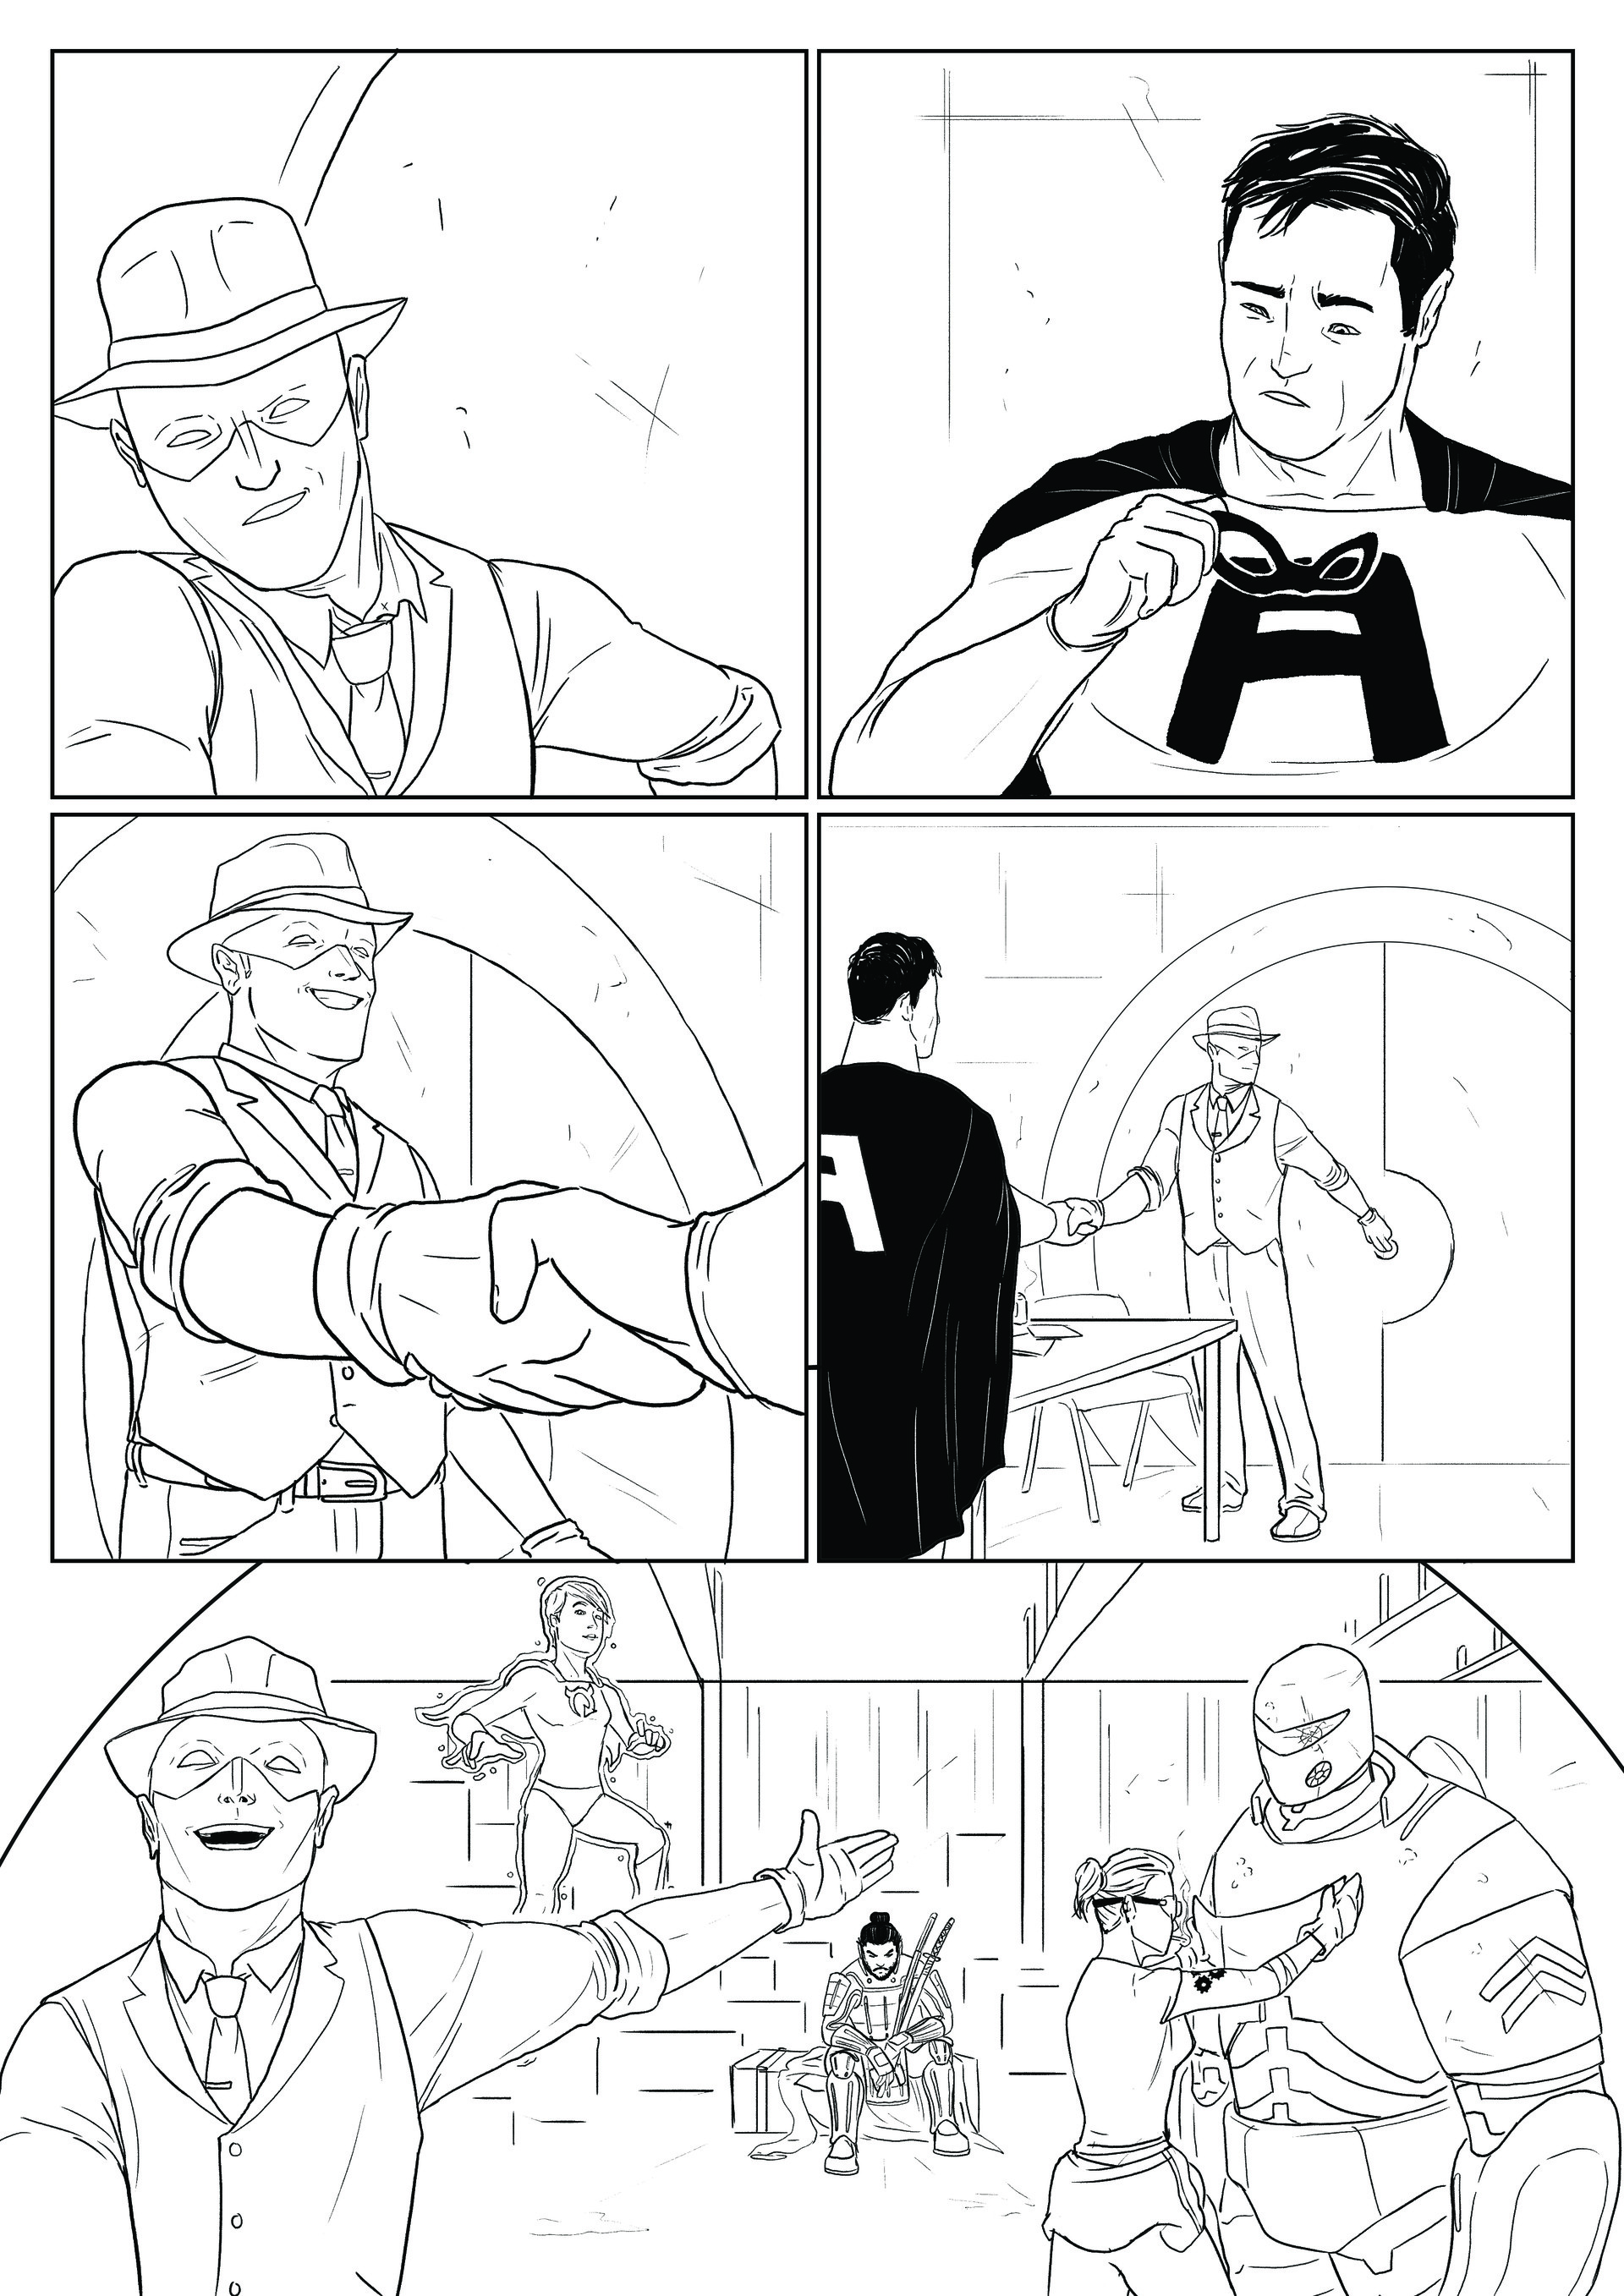 Elliot balson page 2 inks